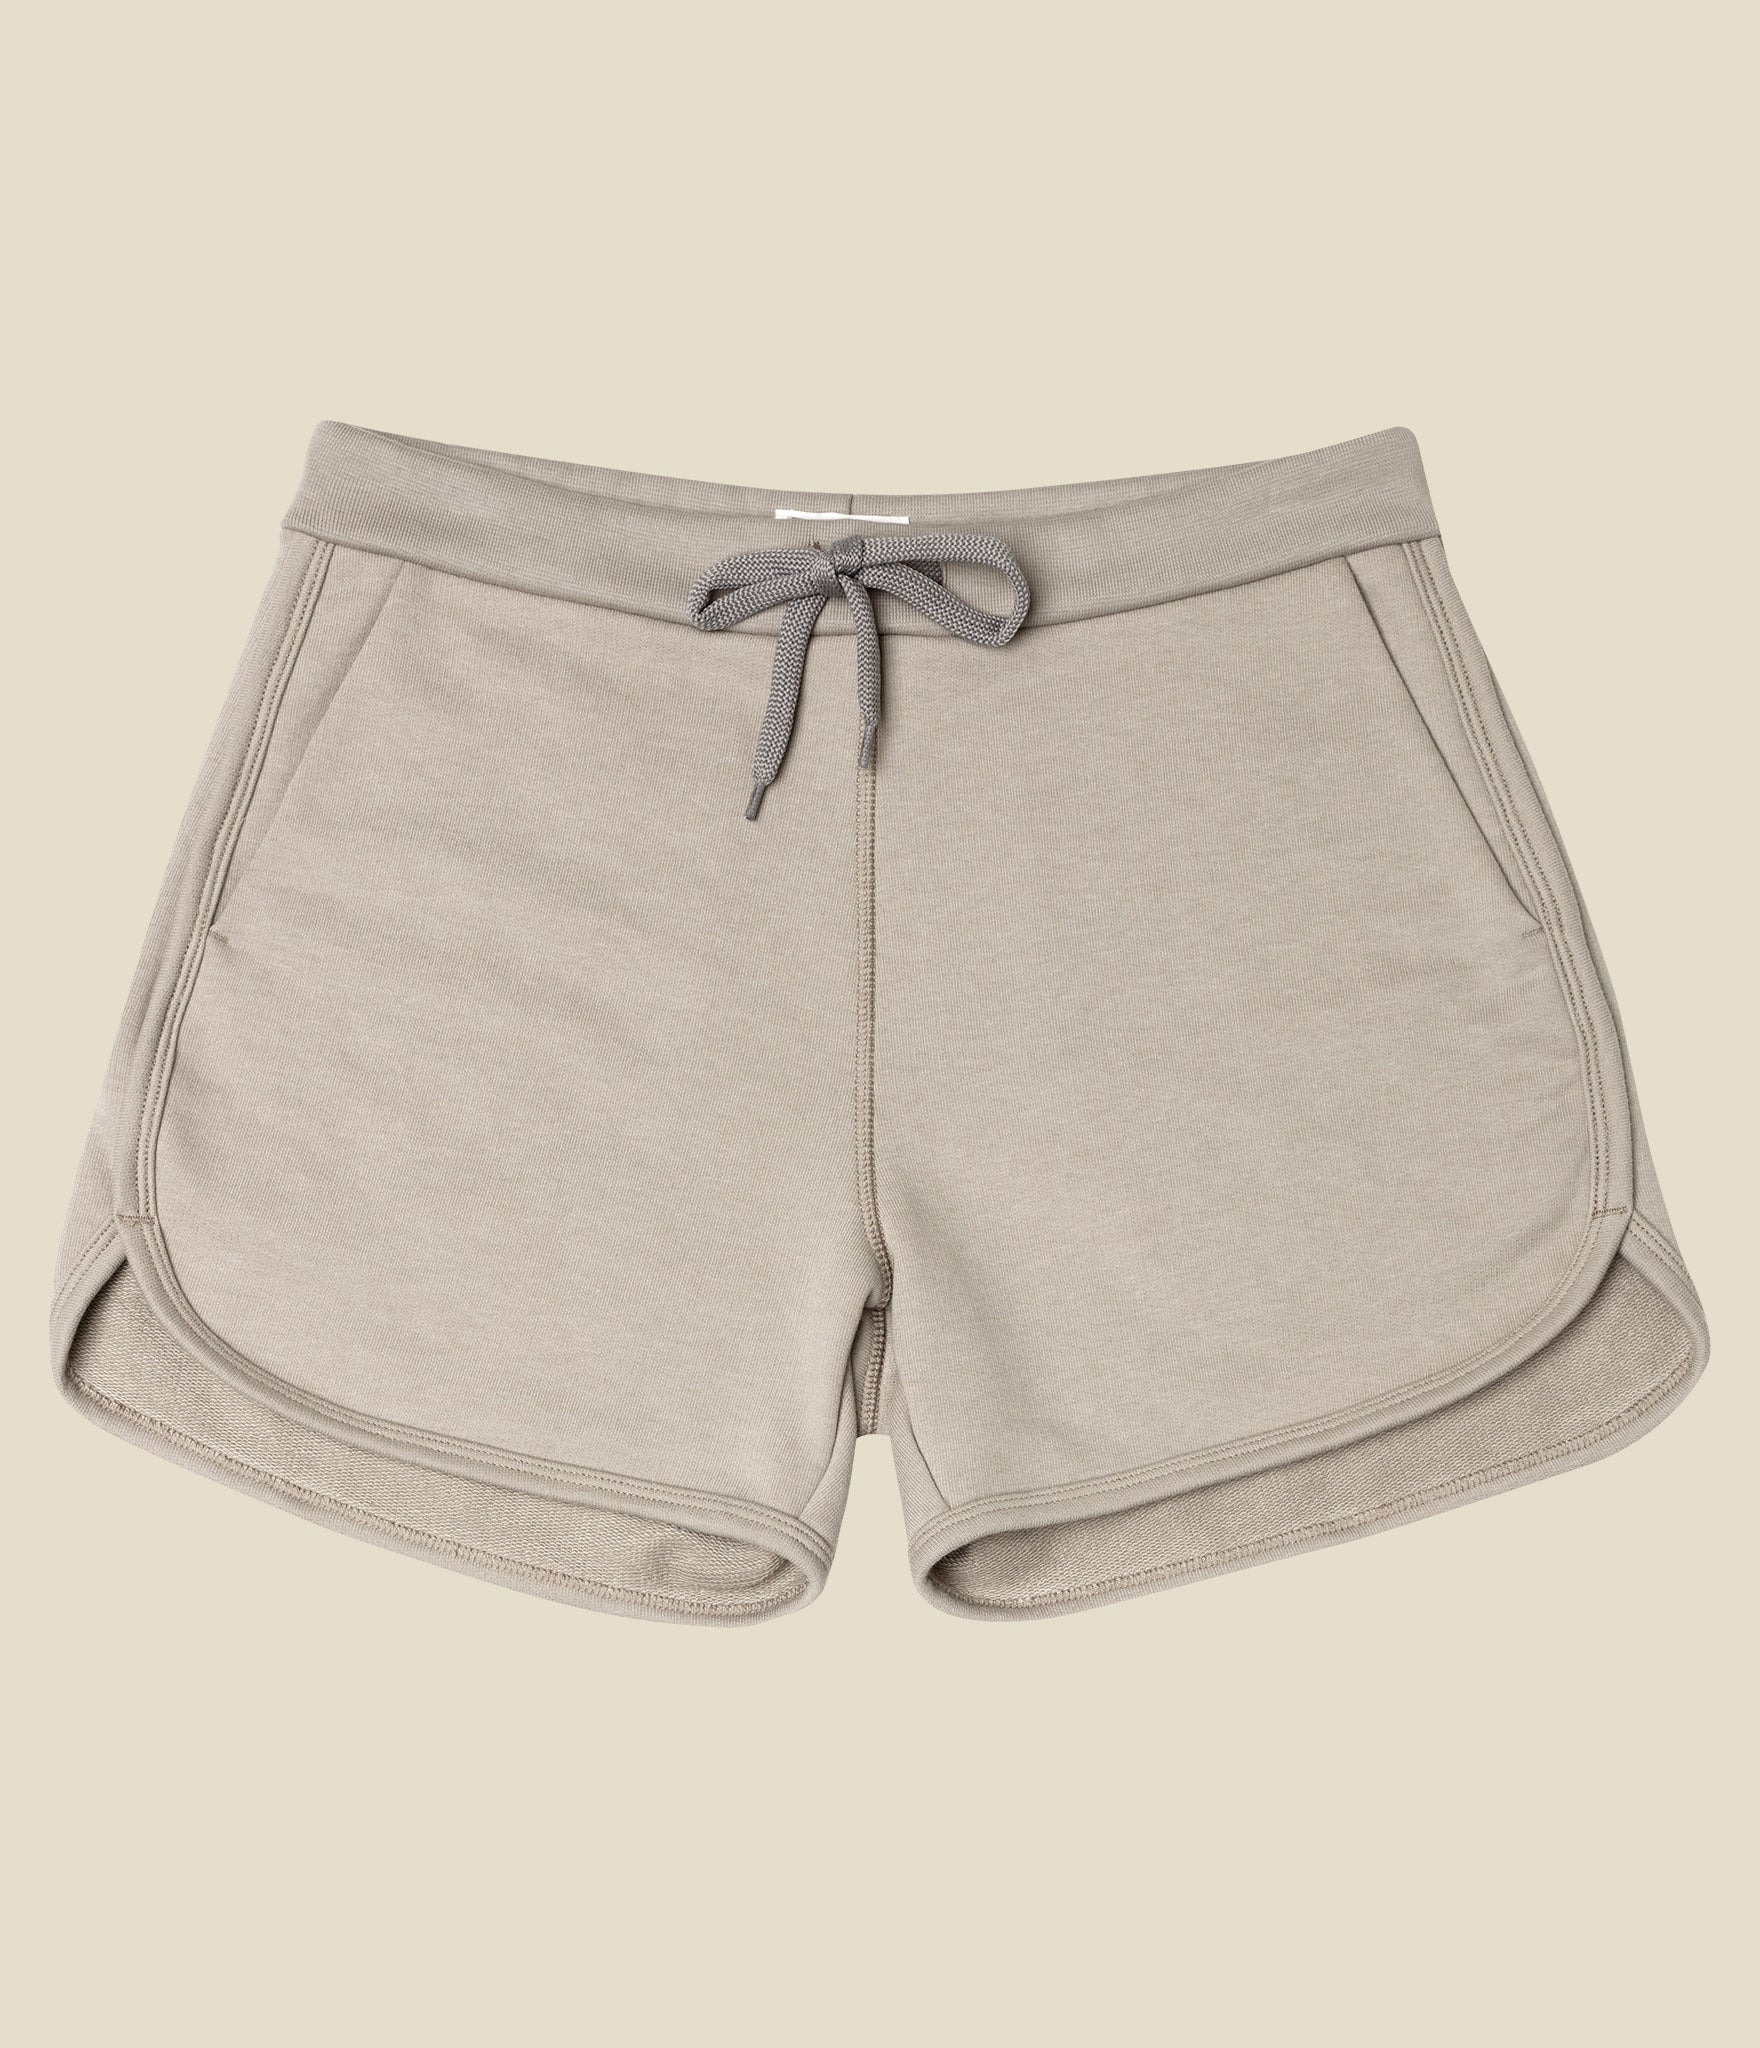 Halifax Shorts </br>Beige